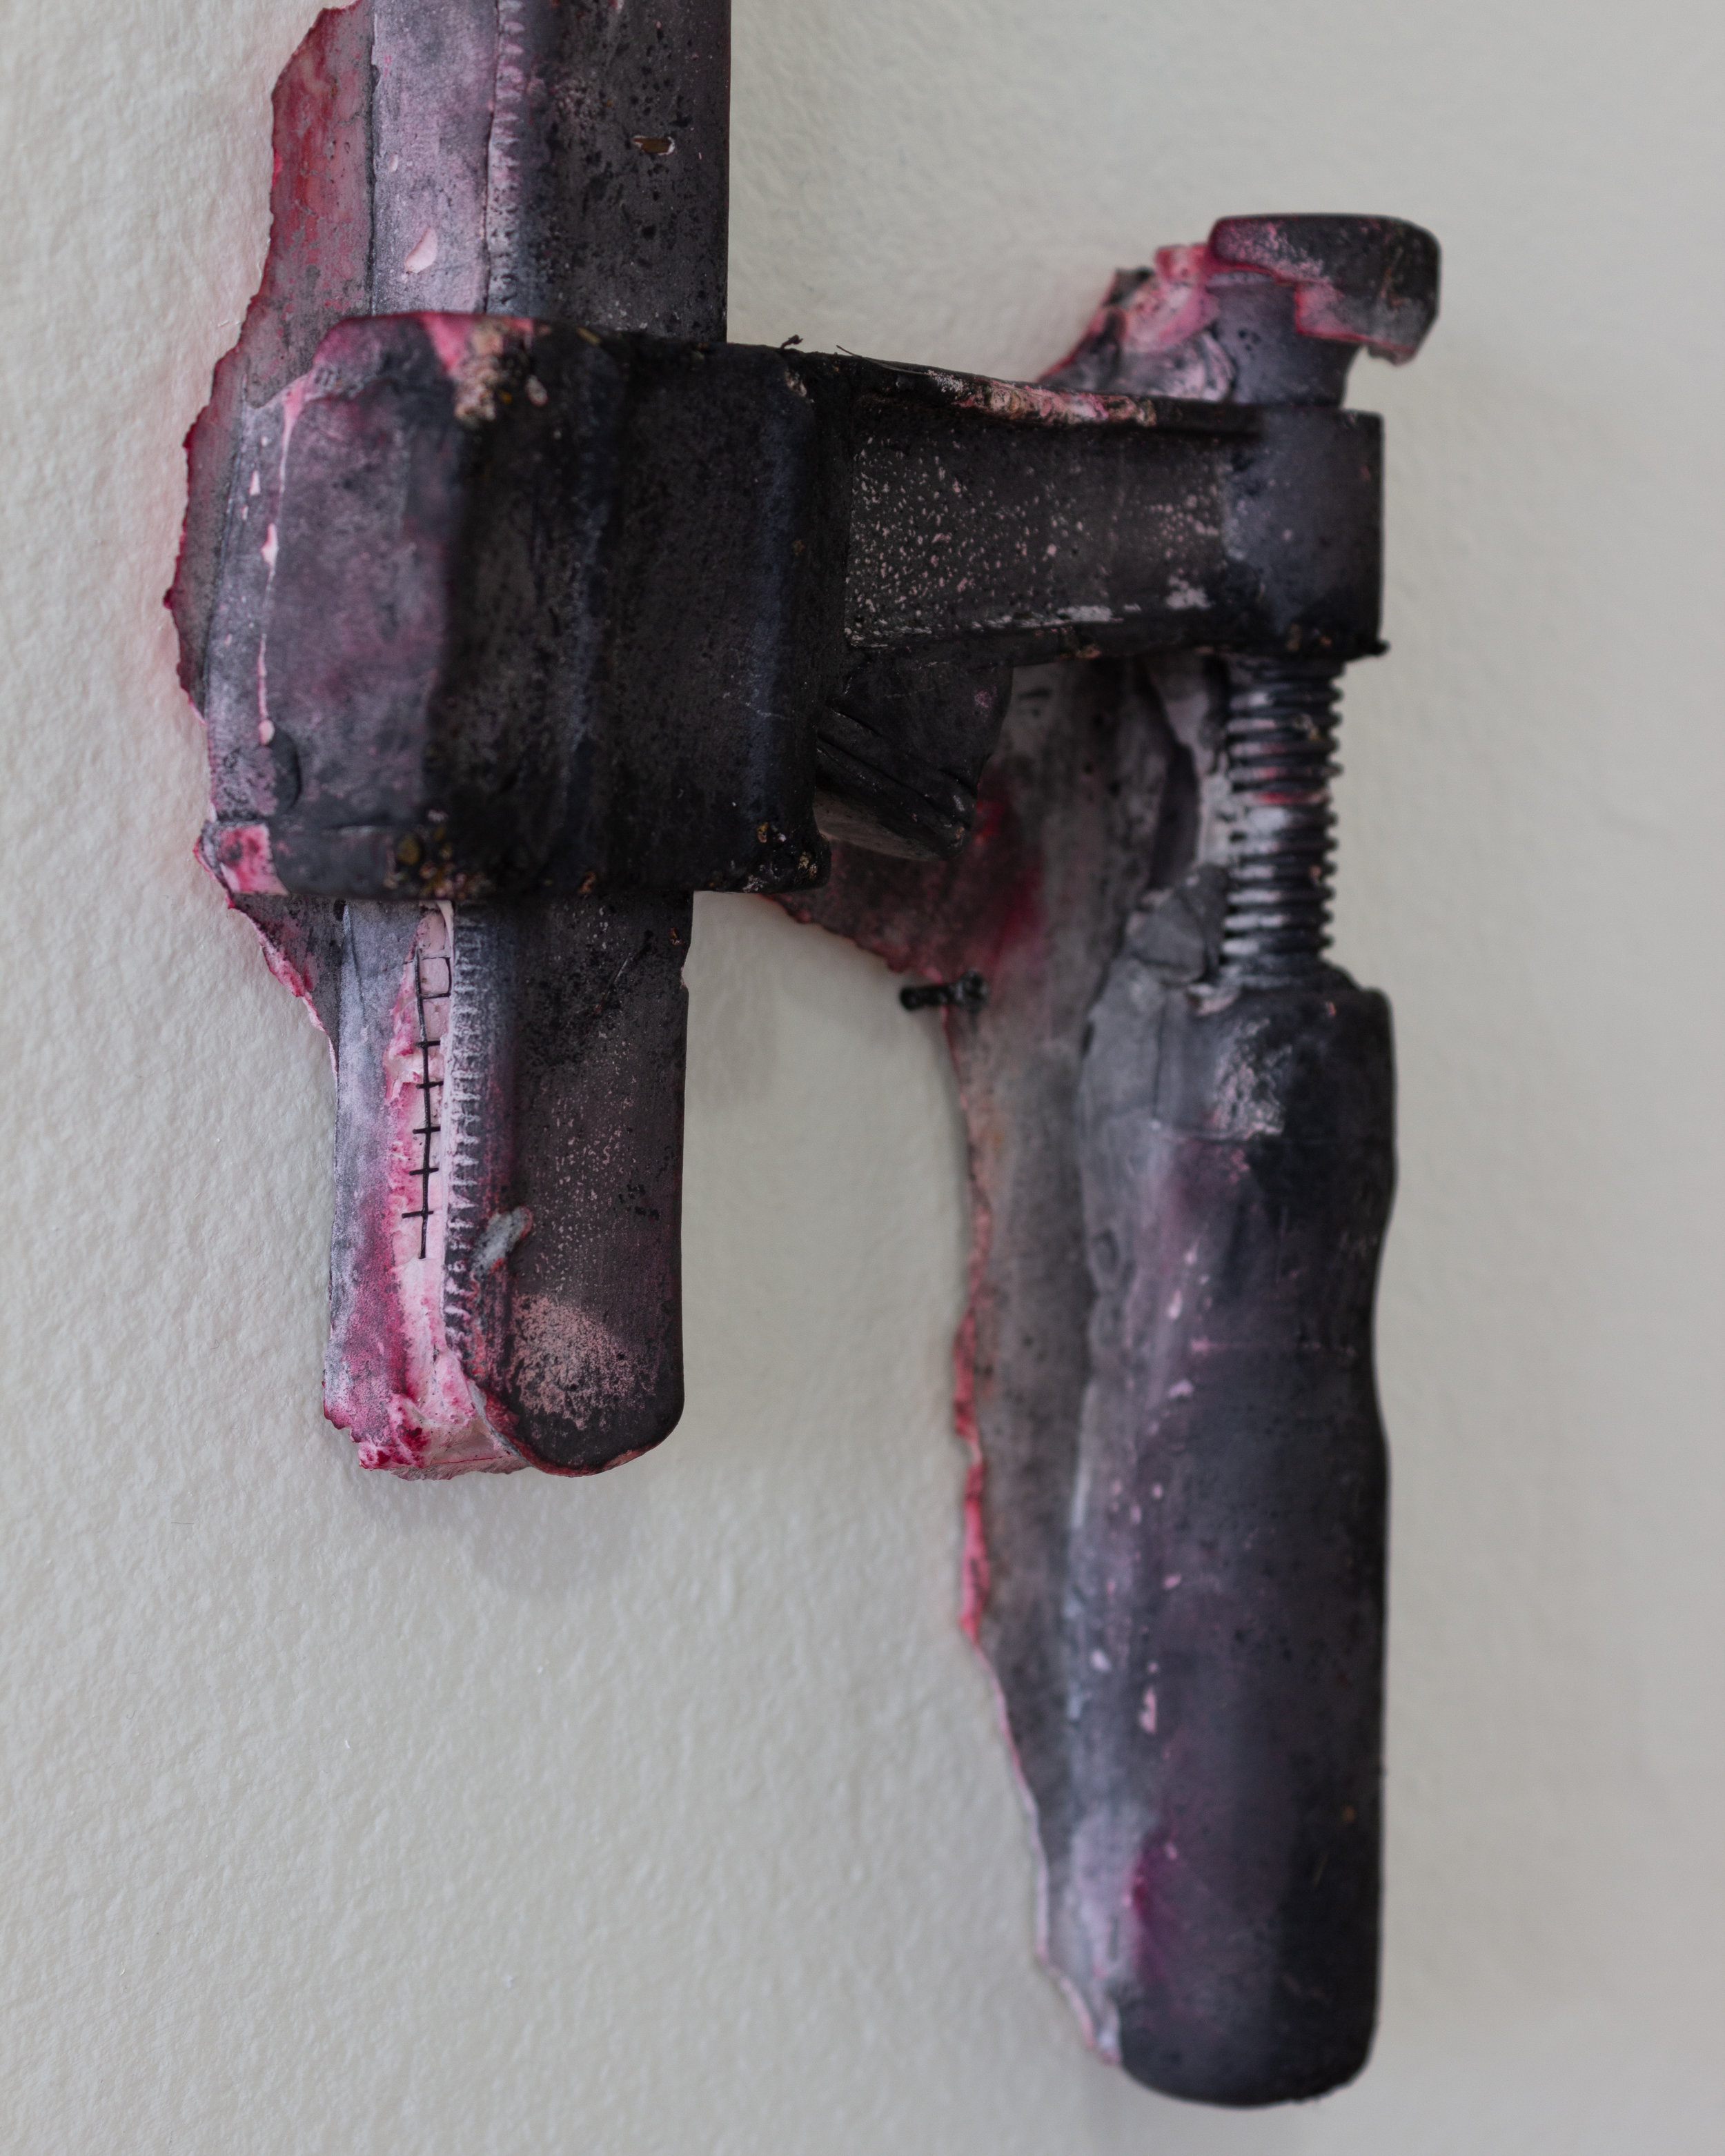 Cathy Hsiao,  Clamp (3) , 2019, Concrete, plant dye, silicone, 16 x 5 in. (Detail)